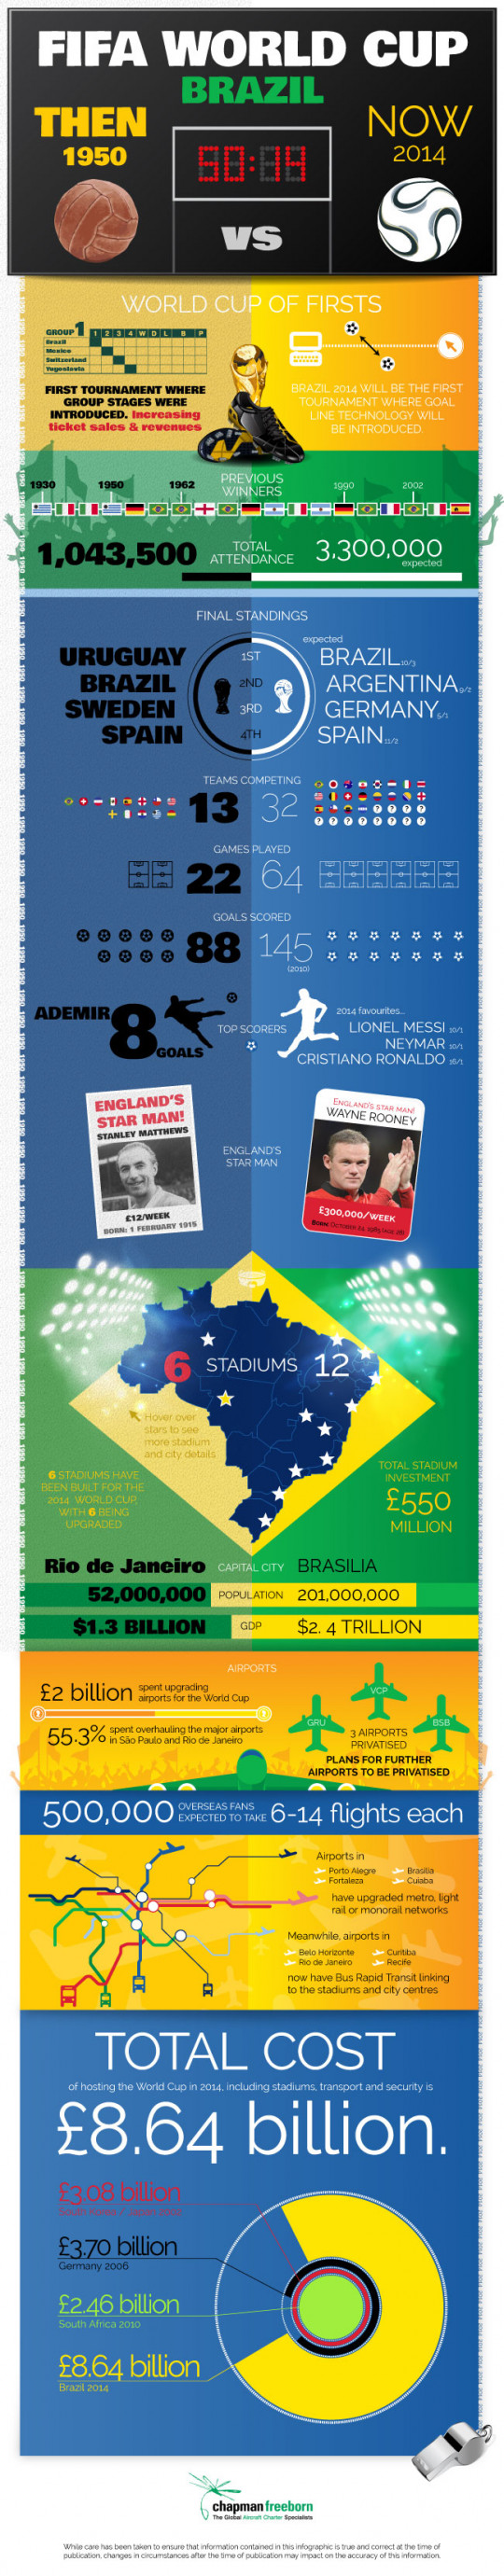 FIFA Throwback - World Cup Brazil 1950 vs 2014